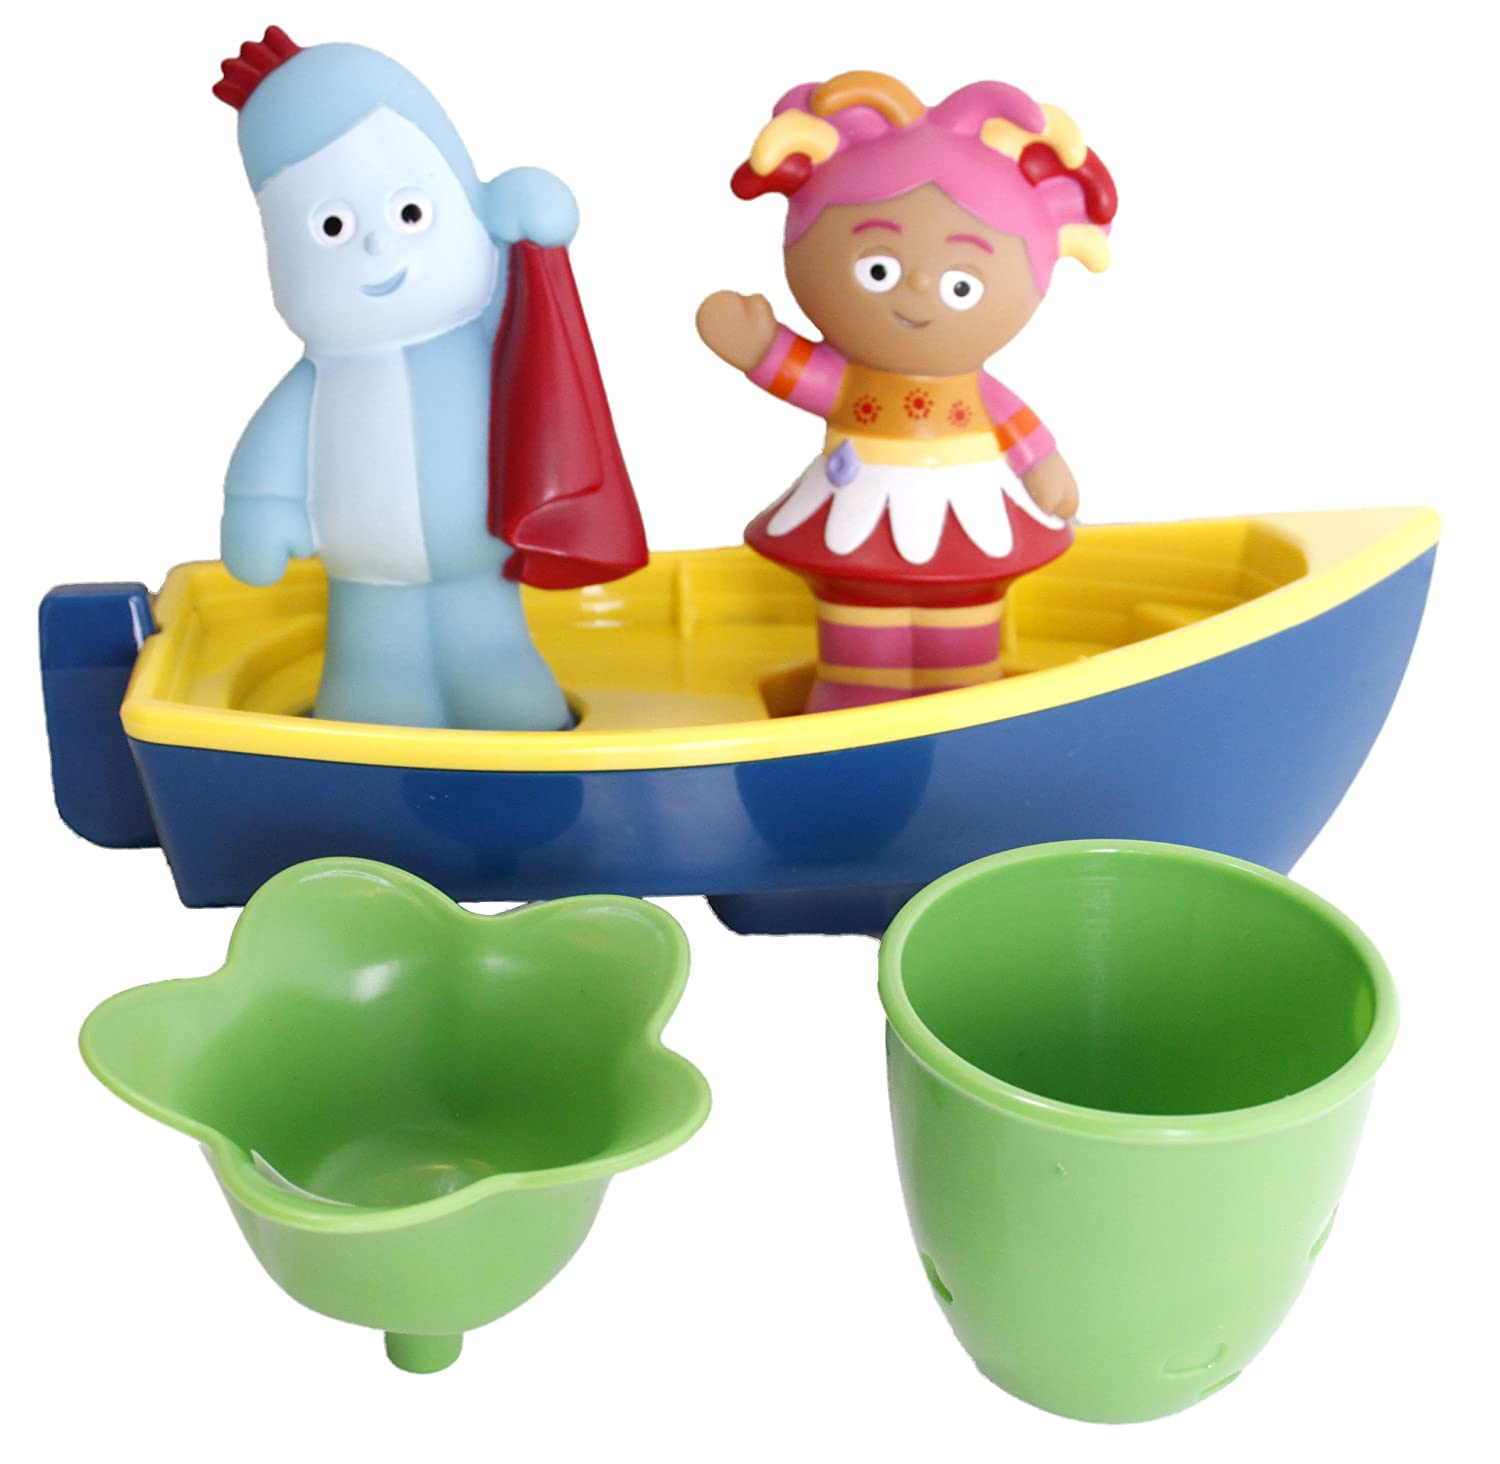 In The Night Garden Iggle Piggle's Floaty Boat Playset Golden Bear Toys 1336